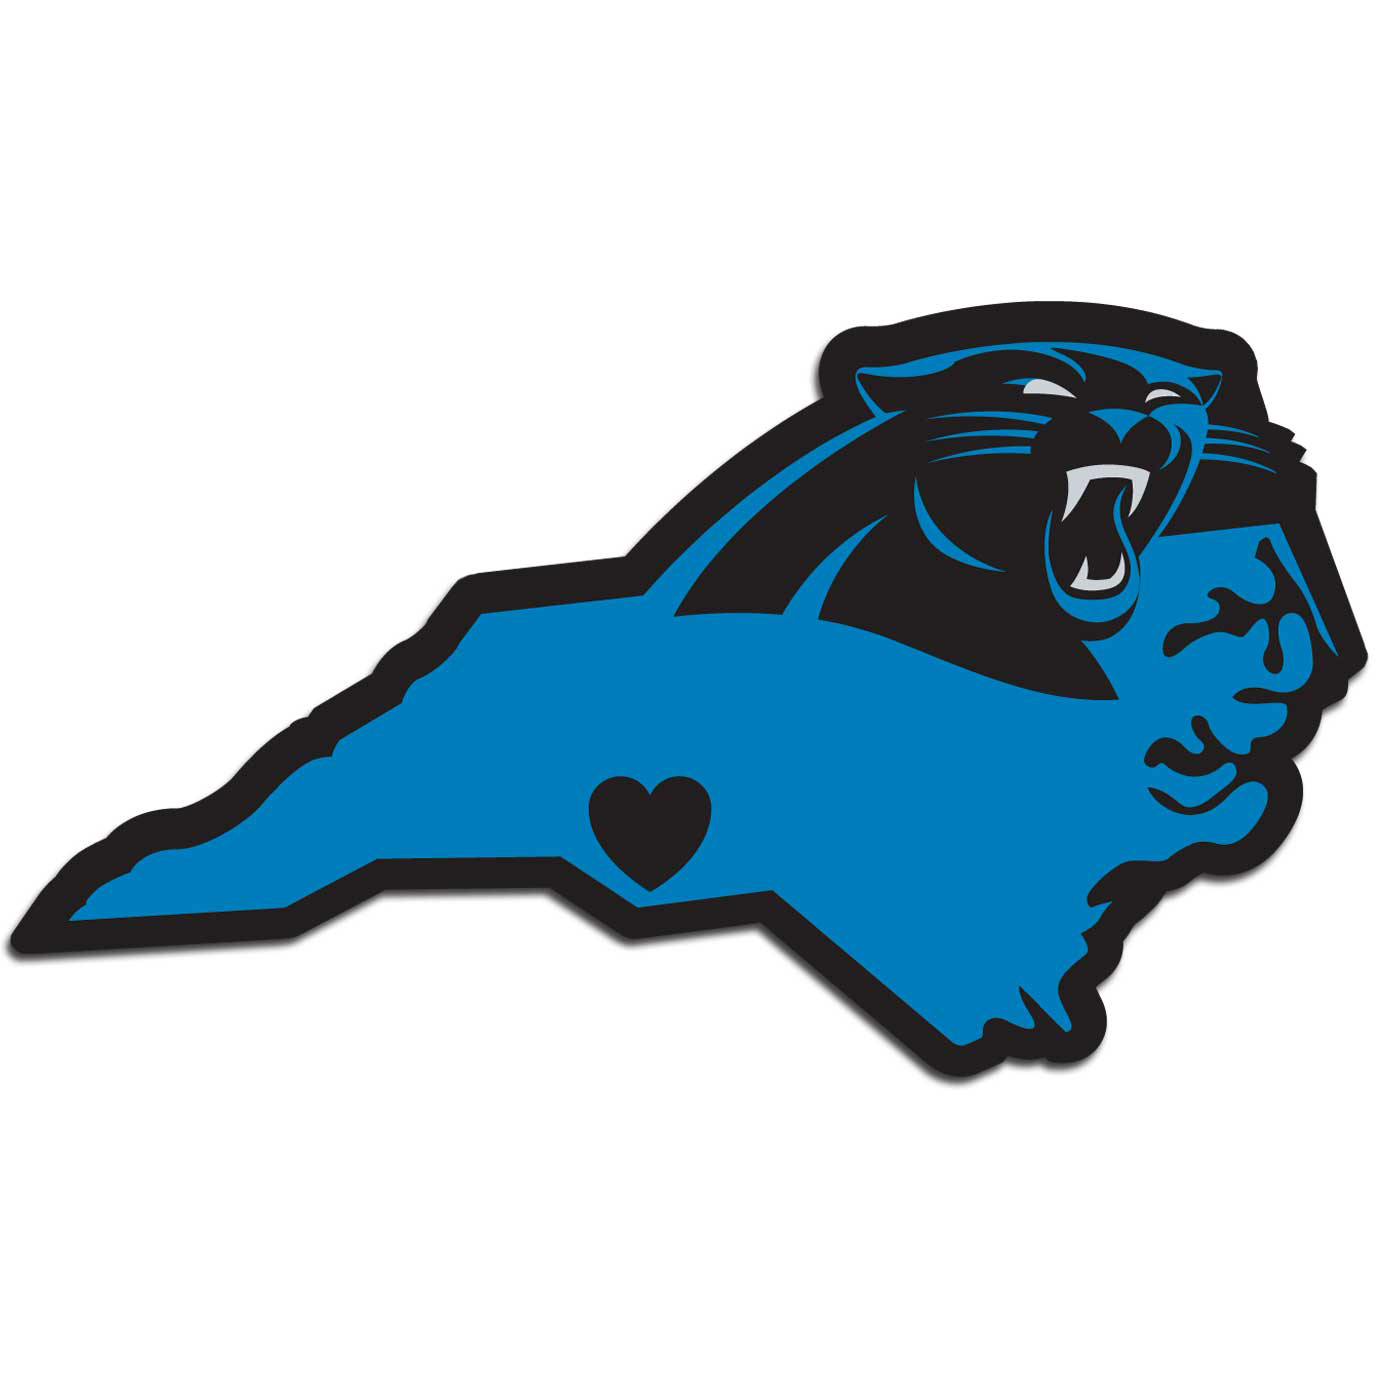 Carolina Panthers Home State Decal - It's a home state decal with a sporty twist! This Carolina Panthers decal feature the team logo over a silhouette of the state in team colors and a heart marking the home of the team. The decal is approximately 5 inches on repositionable vinyl.